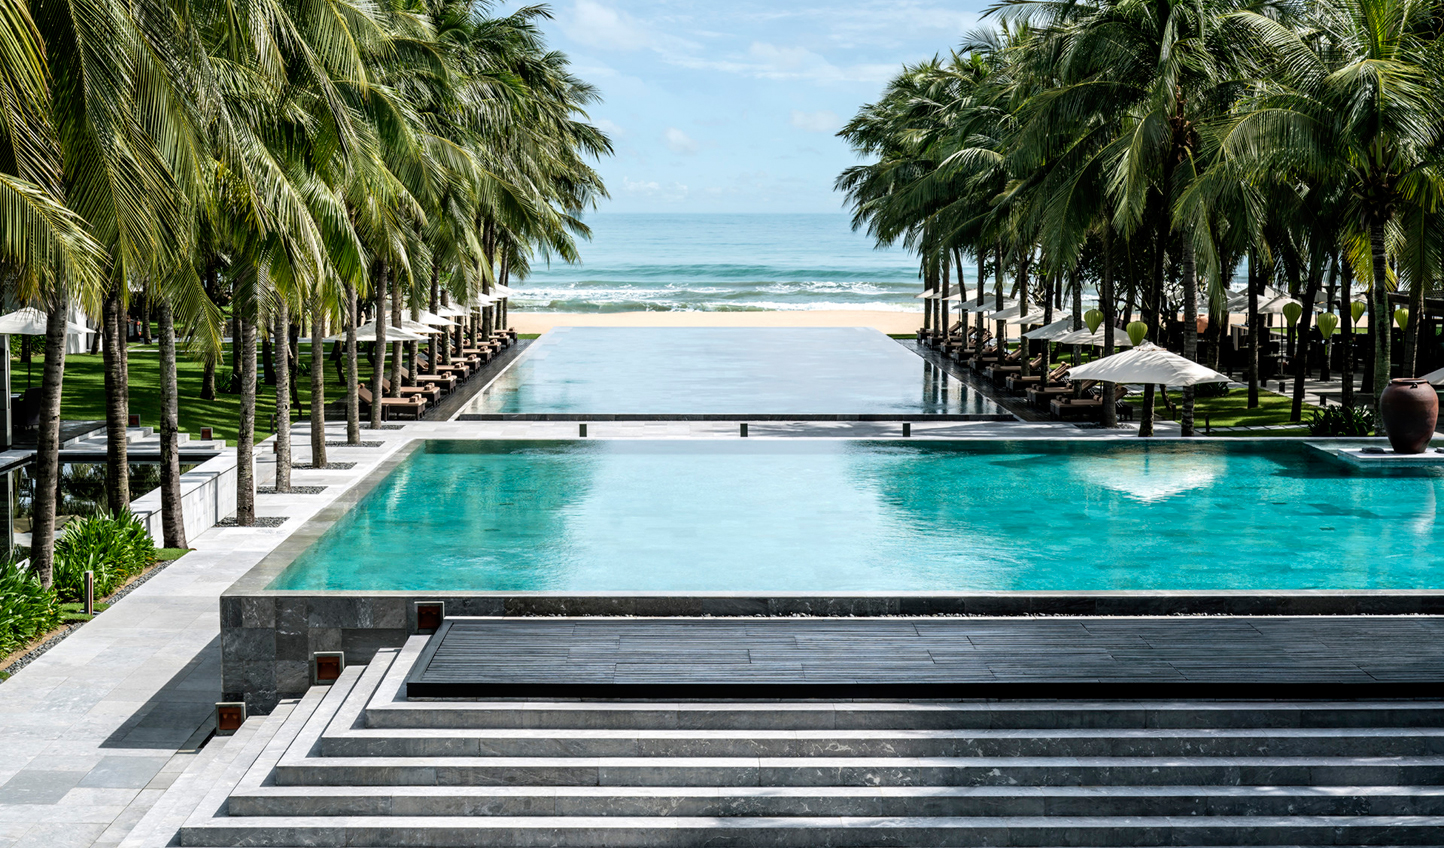 Four Seasons Nam Hai's spectacular swimming pools